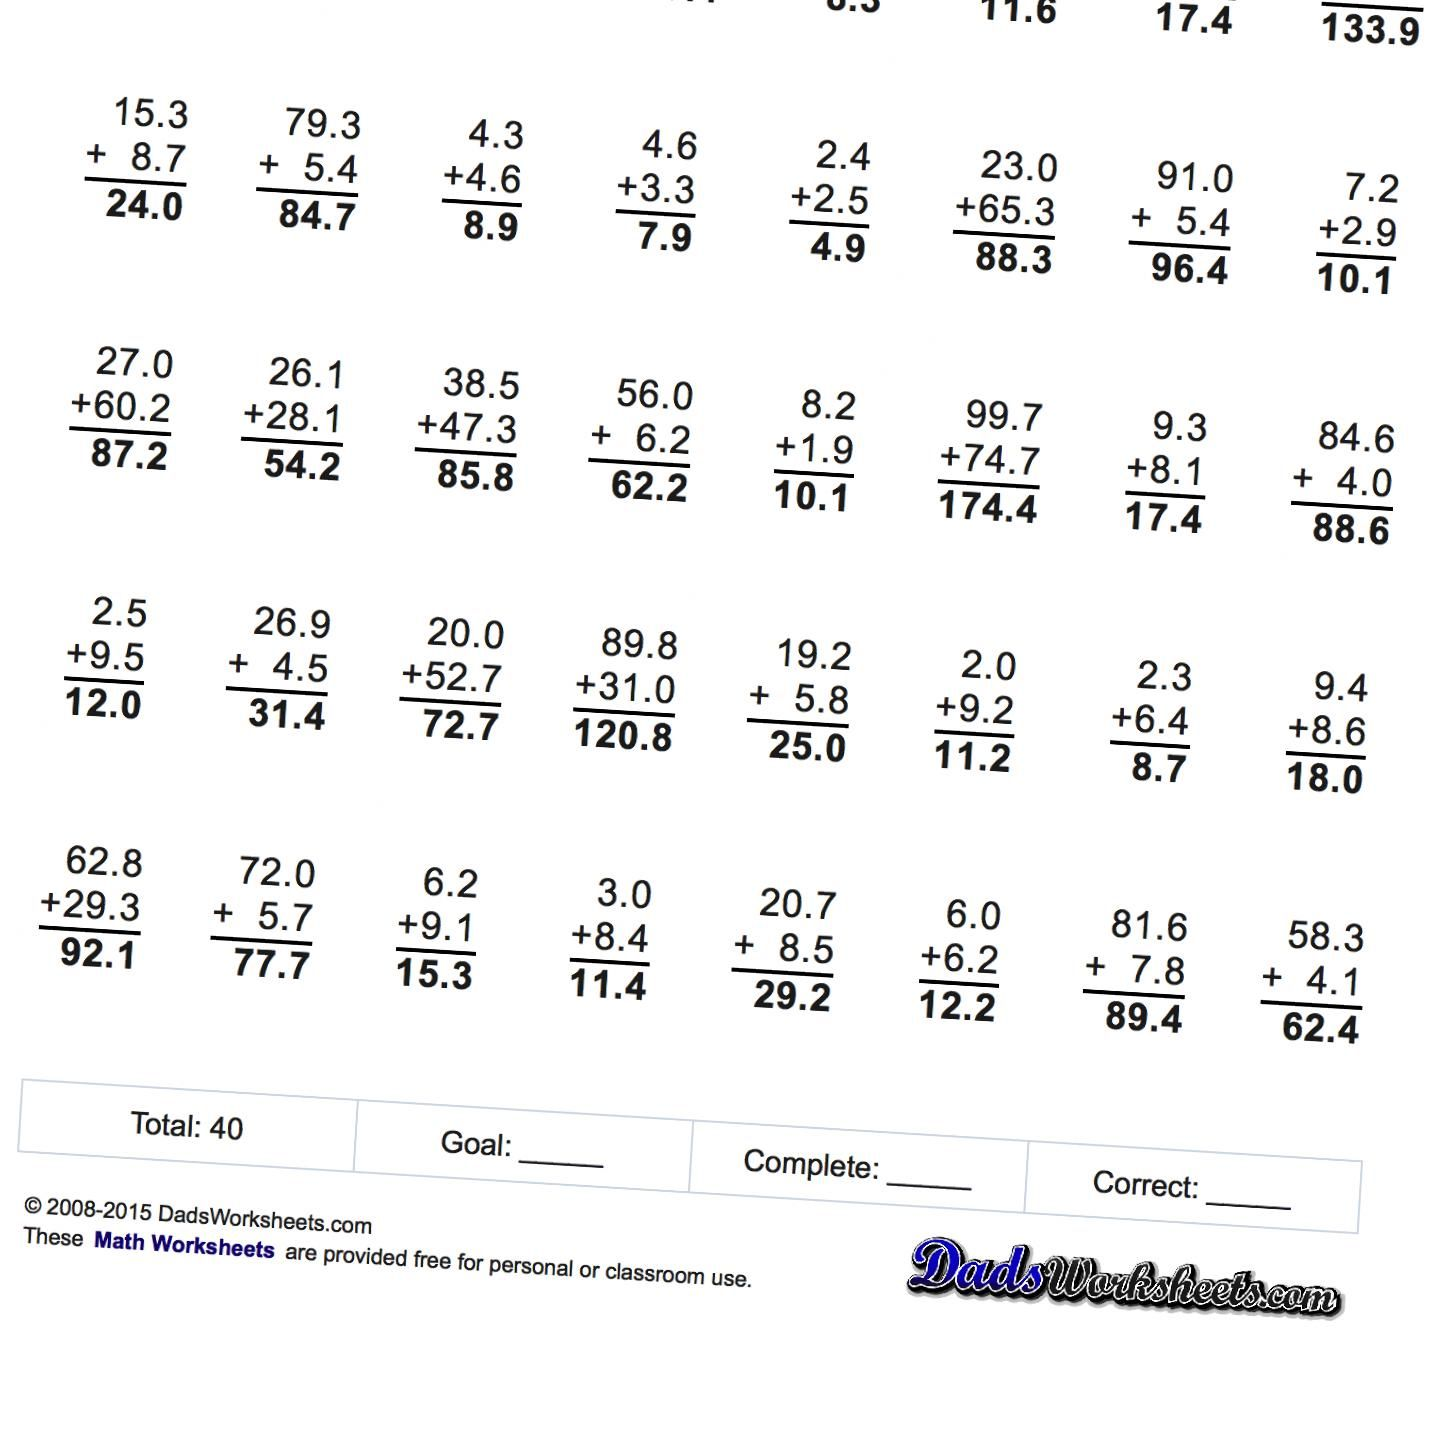 worksheet Decimal Addition Worksheets addition with decimals using tenths and hundredths math hundredths